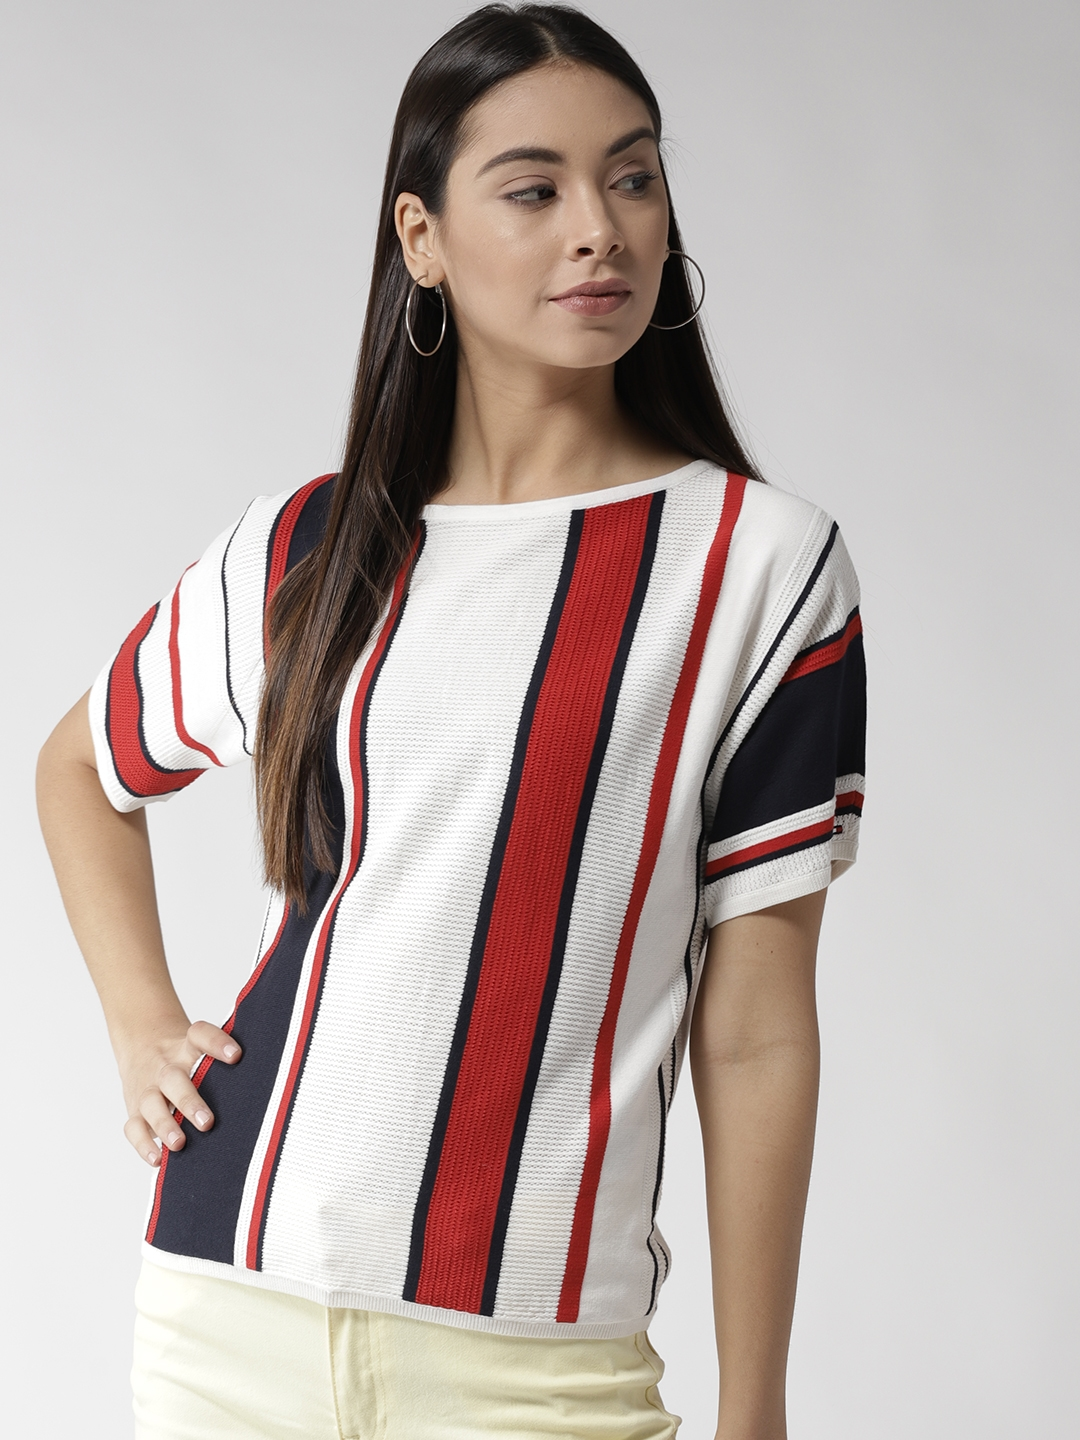 4d8a6a19c3e Buy Tommy Hilfiger Women White   Red Striped Top - Tops for Women ...